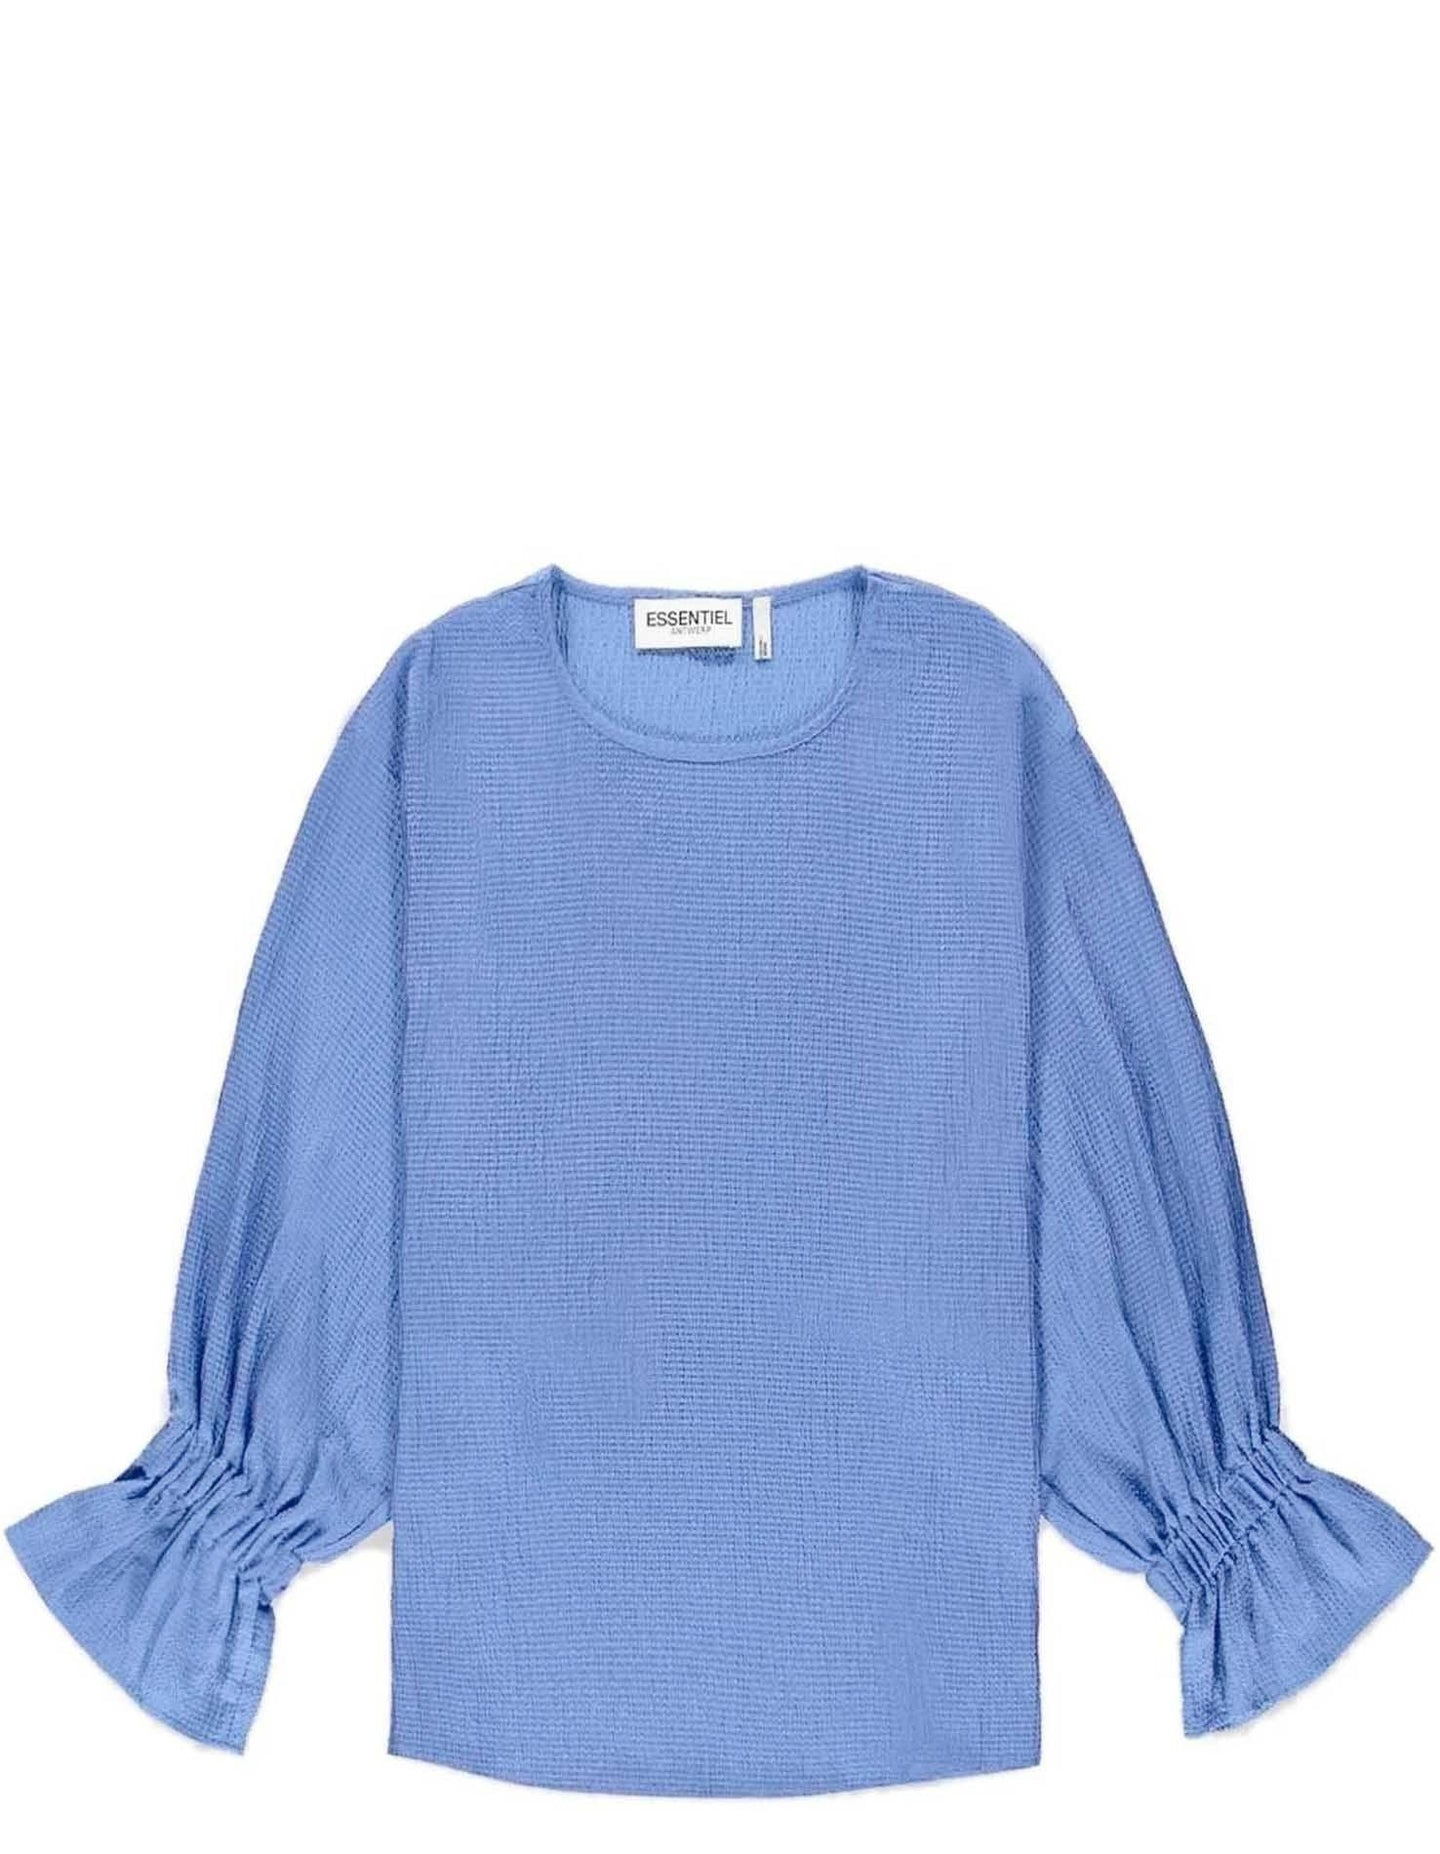 SOUL TOP LIGHT BLUE